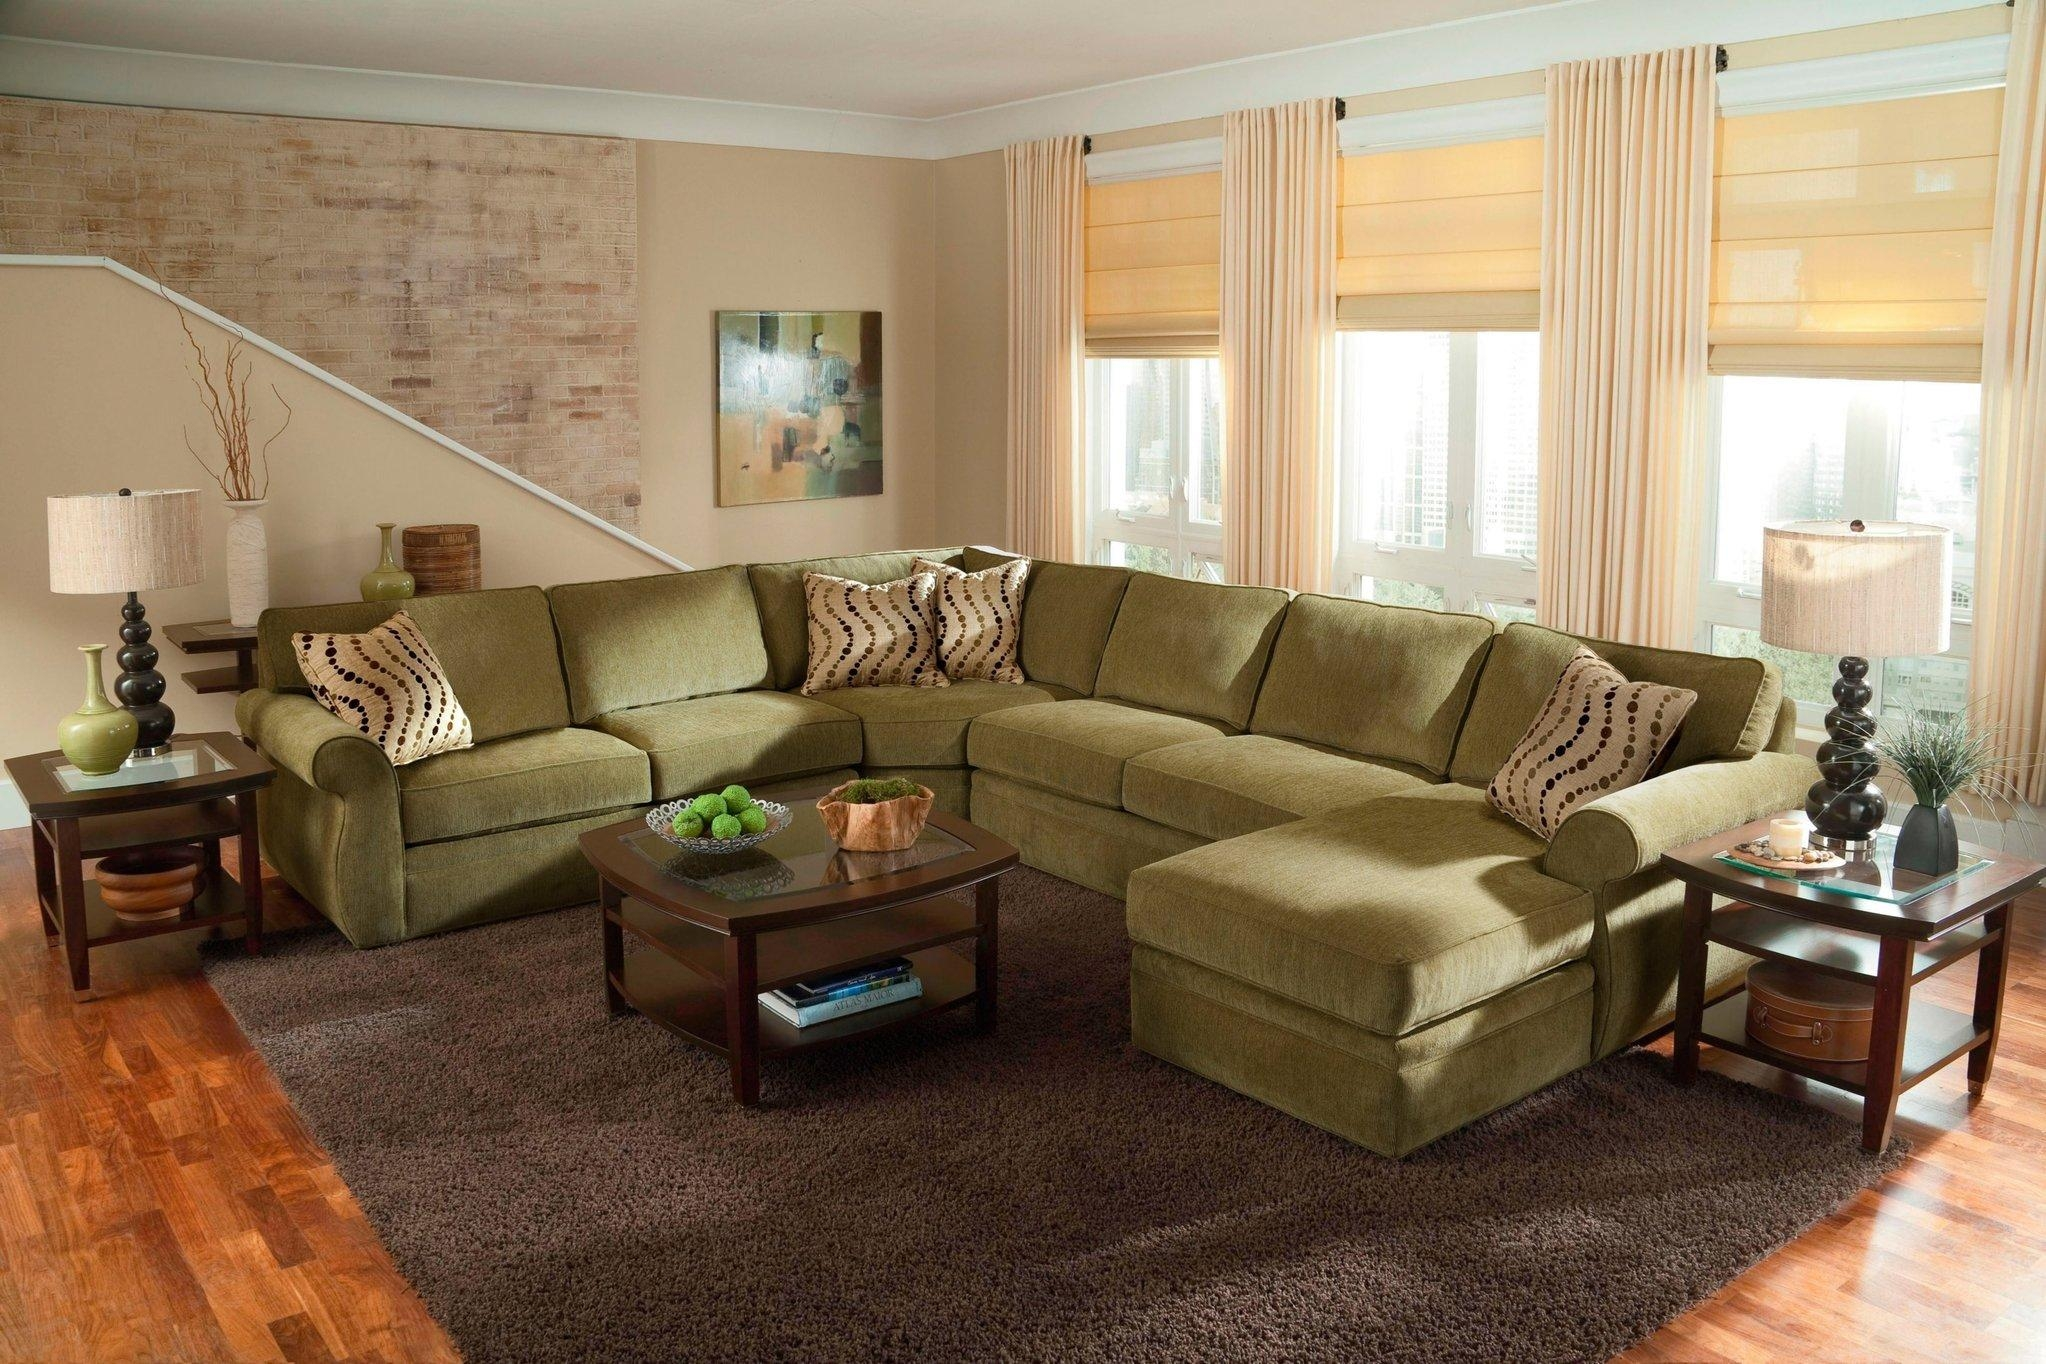 Interior: Luxury Oversized Sectional Sofa For Awesome Living Room For Oversized Sectional Sofa (View 8 of 20)